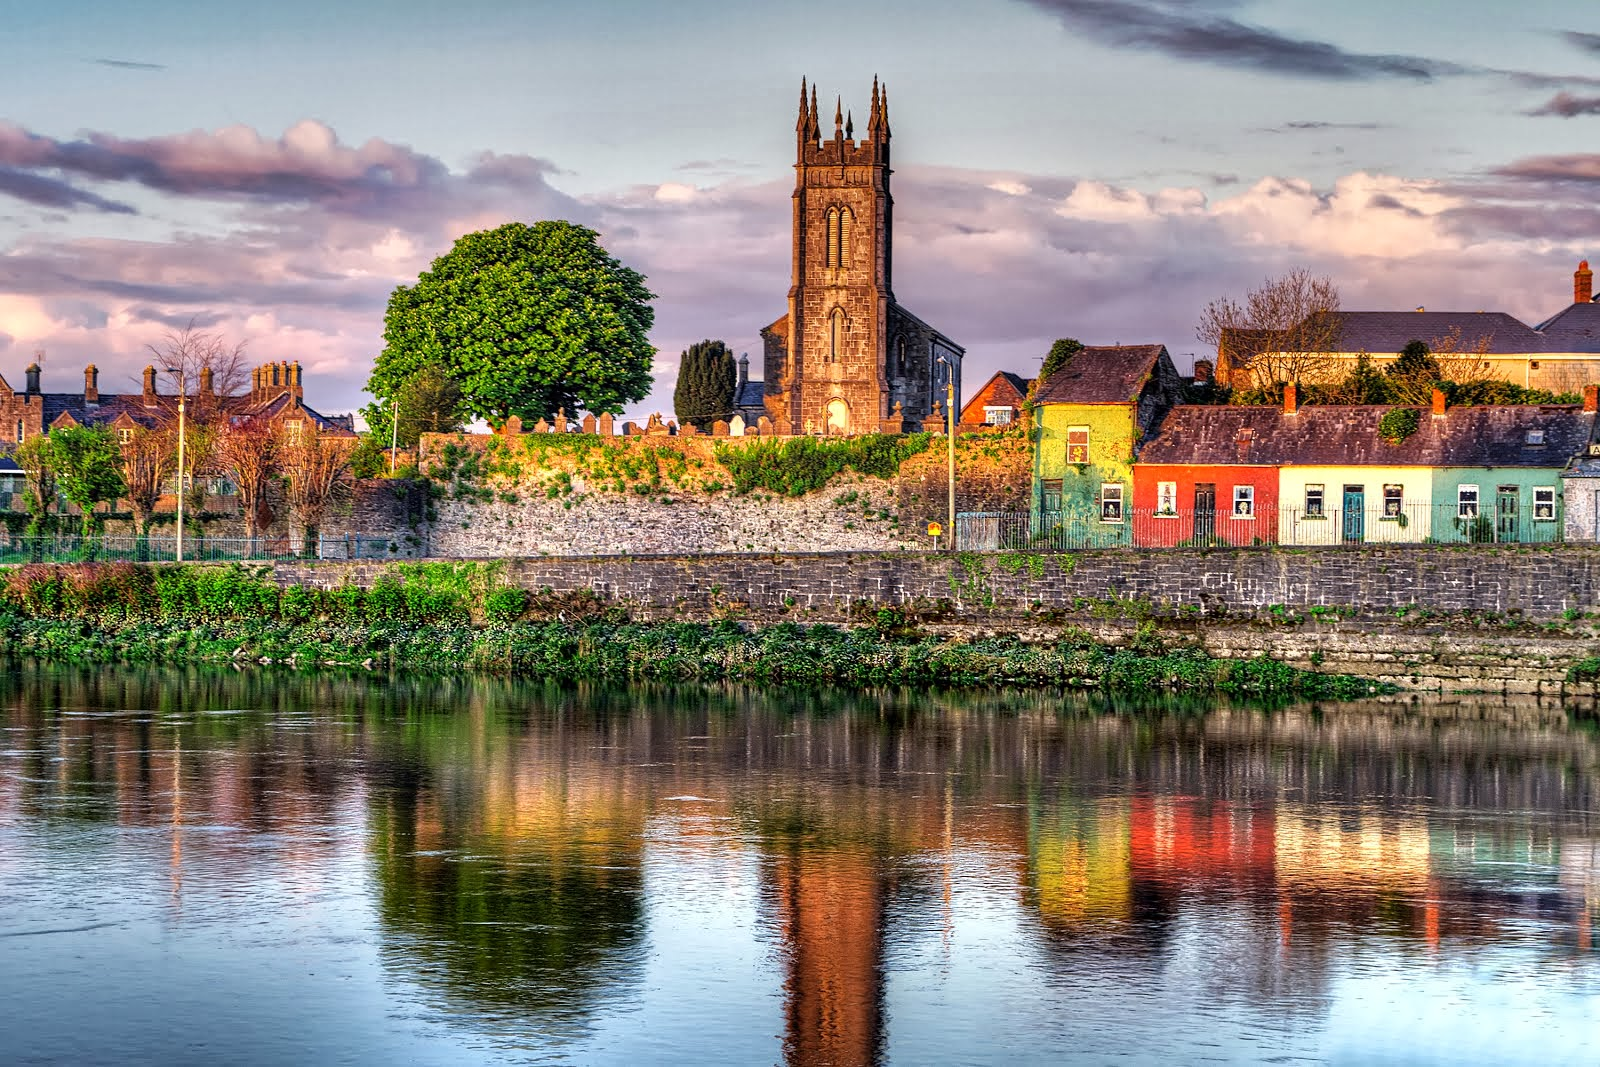 Vacation Inspiration #778 - Limerick, Ireland